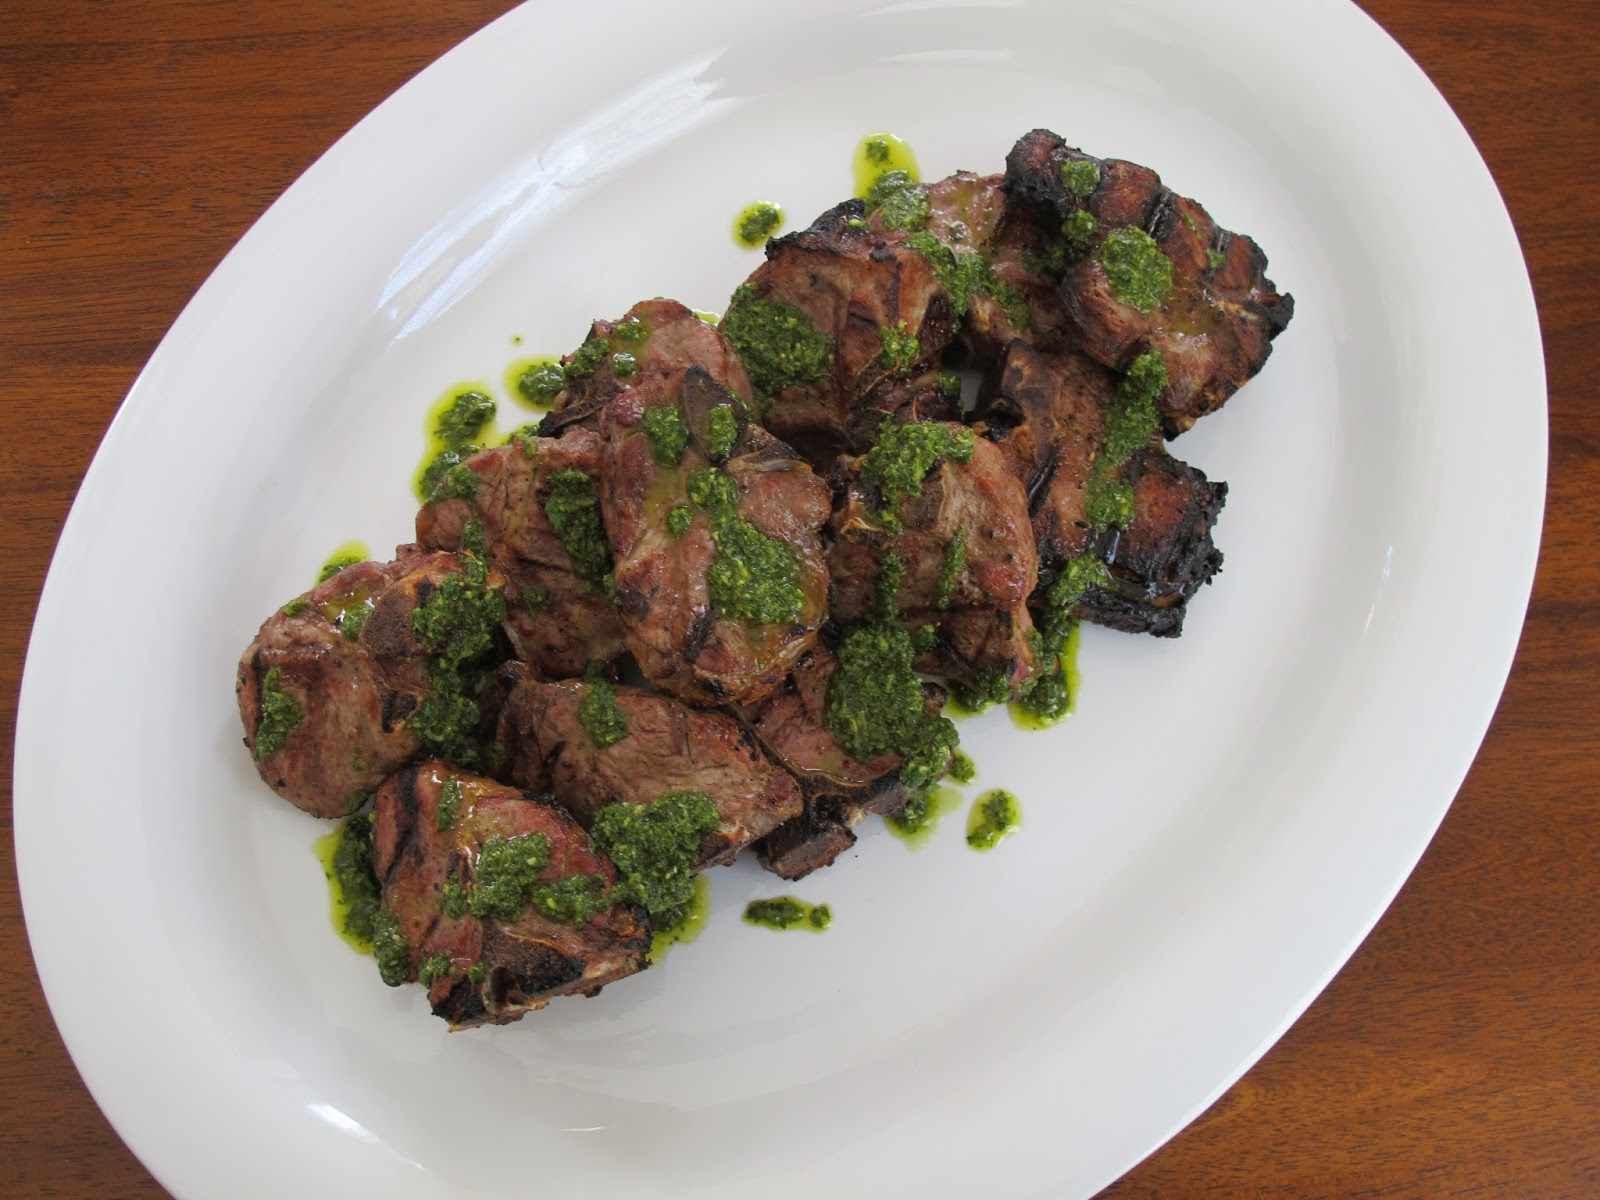 Grilled Lamb Loin Chops with Mint Sauce